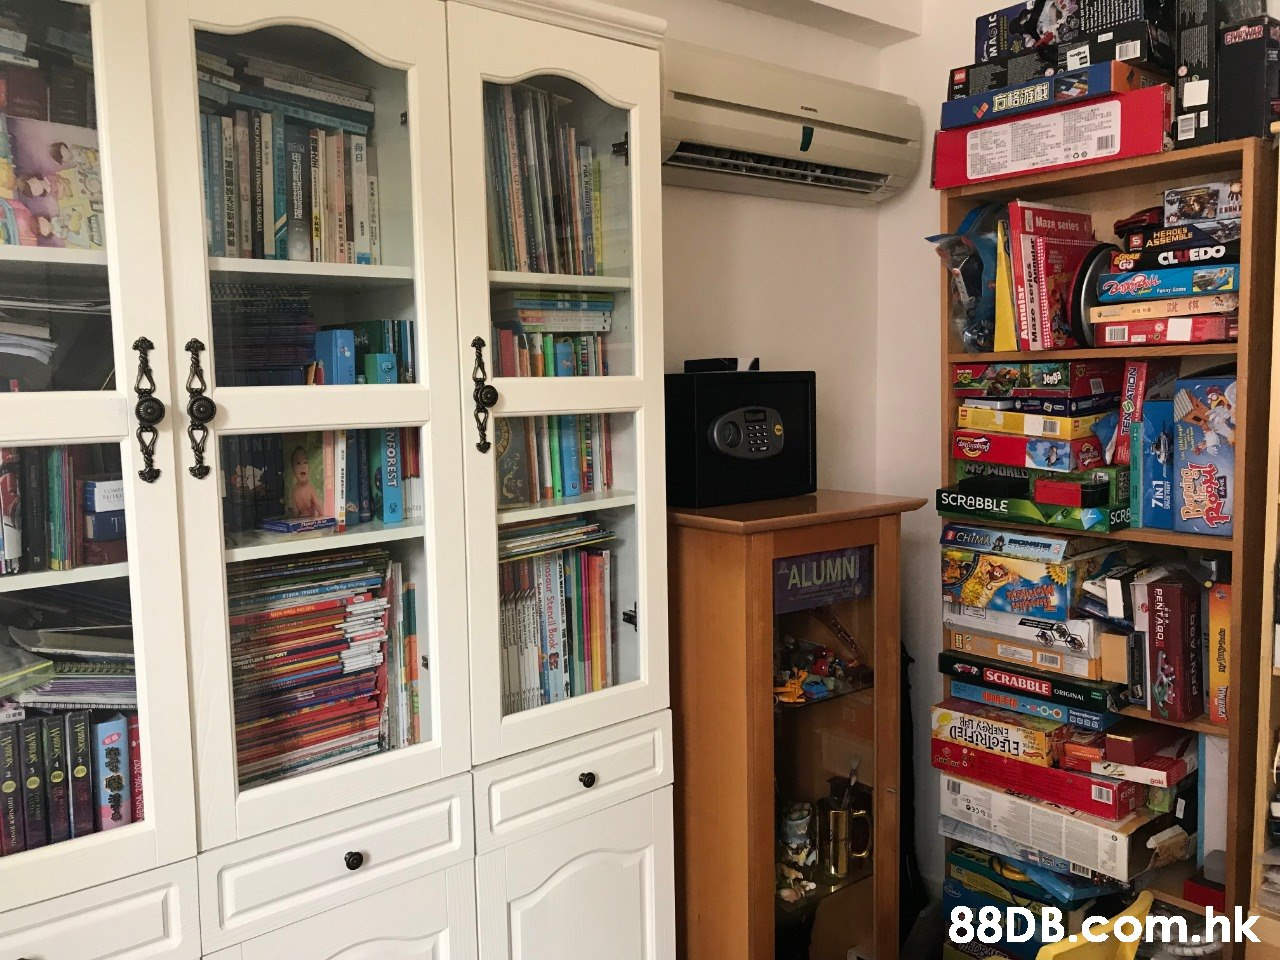 WAR Maze series SAFEES CLUEDO SCRABBLE CR CHIMA ALUMN SCRABBLE GNA O-Oana ENERGY LR ELECĪRIFIED .hk PENTAa NOO  Shelf,Shelving,Bookcase,Furniture,Room